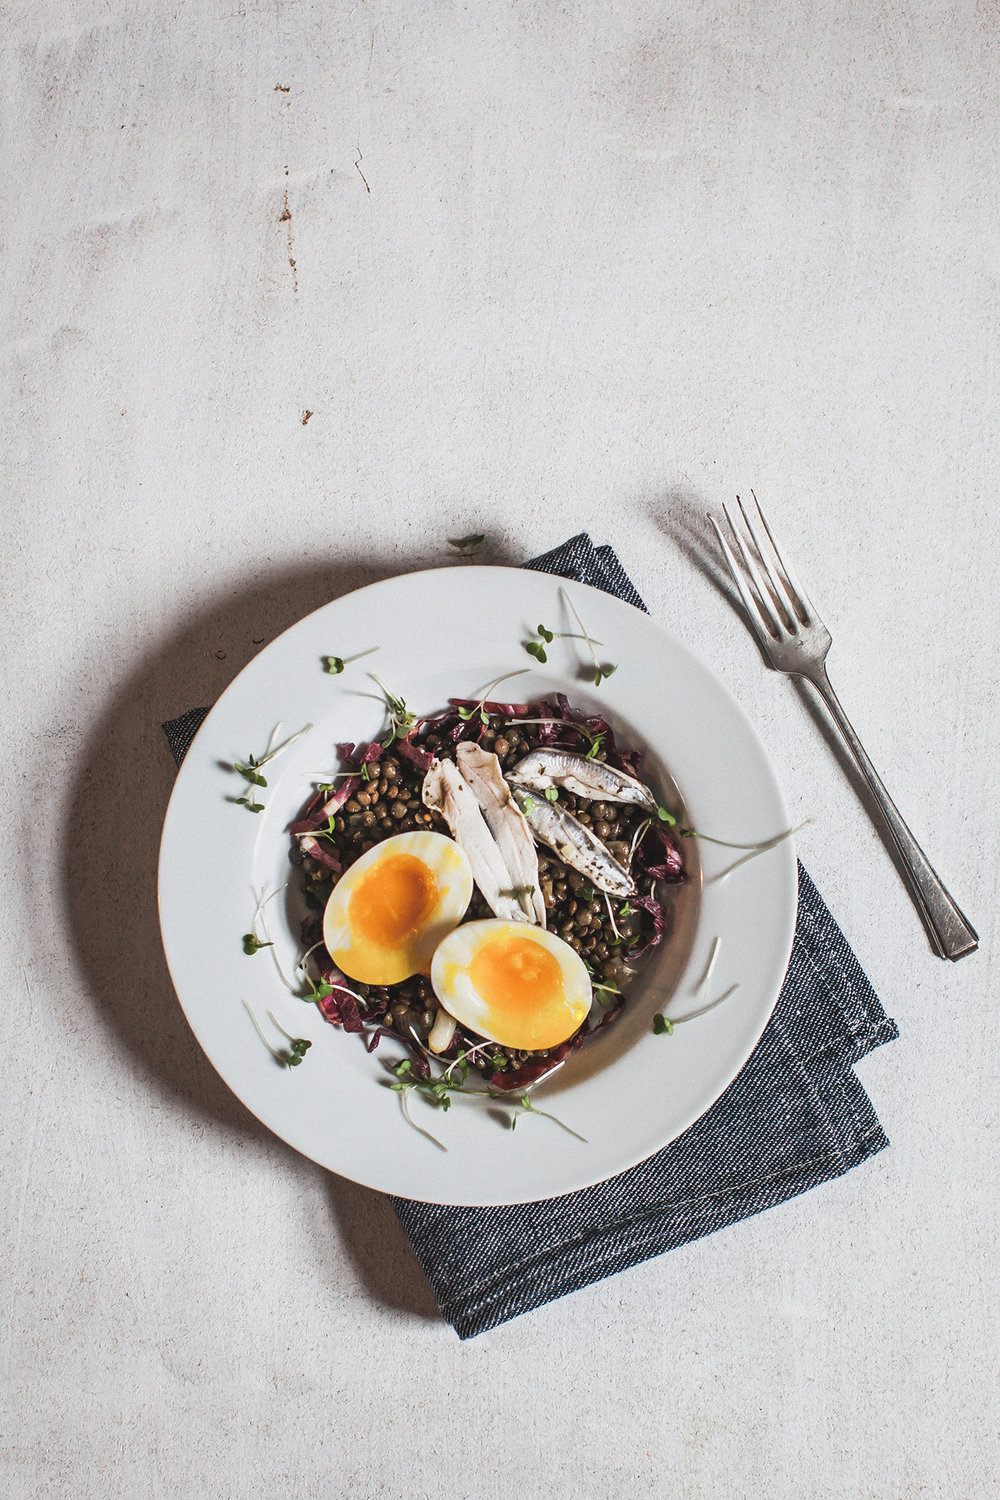 Puy lentil, anchovy and soft egg salad. Retreat // Food and lifestyle blog based in Sussex. Photography by Emma Gutteridge.